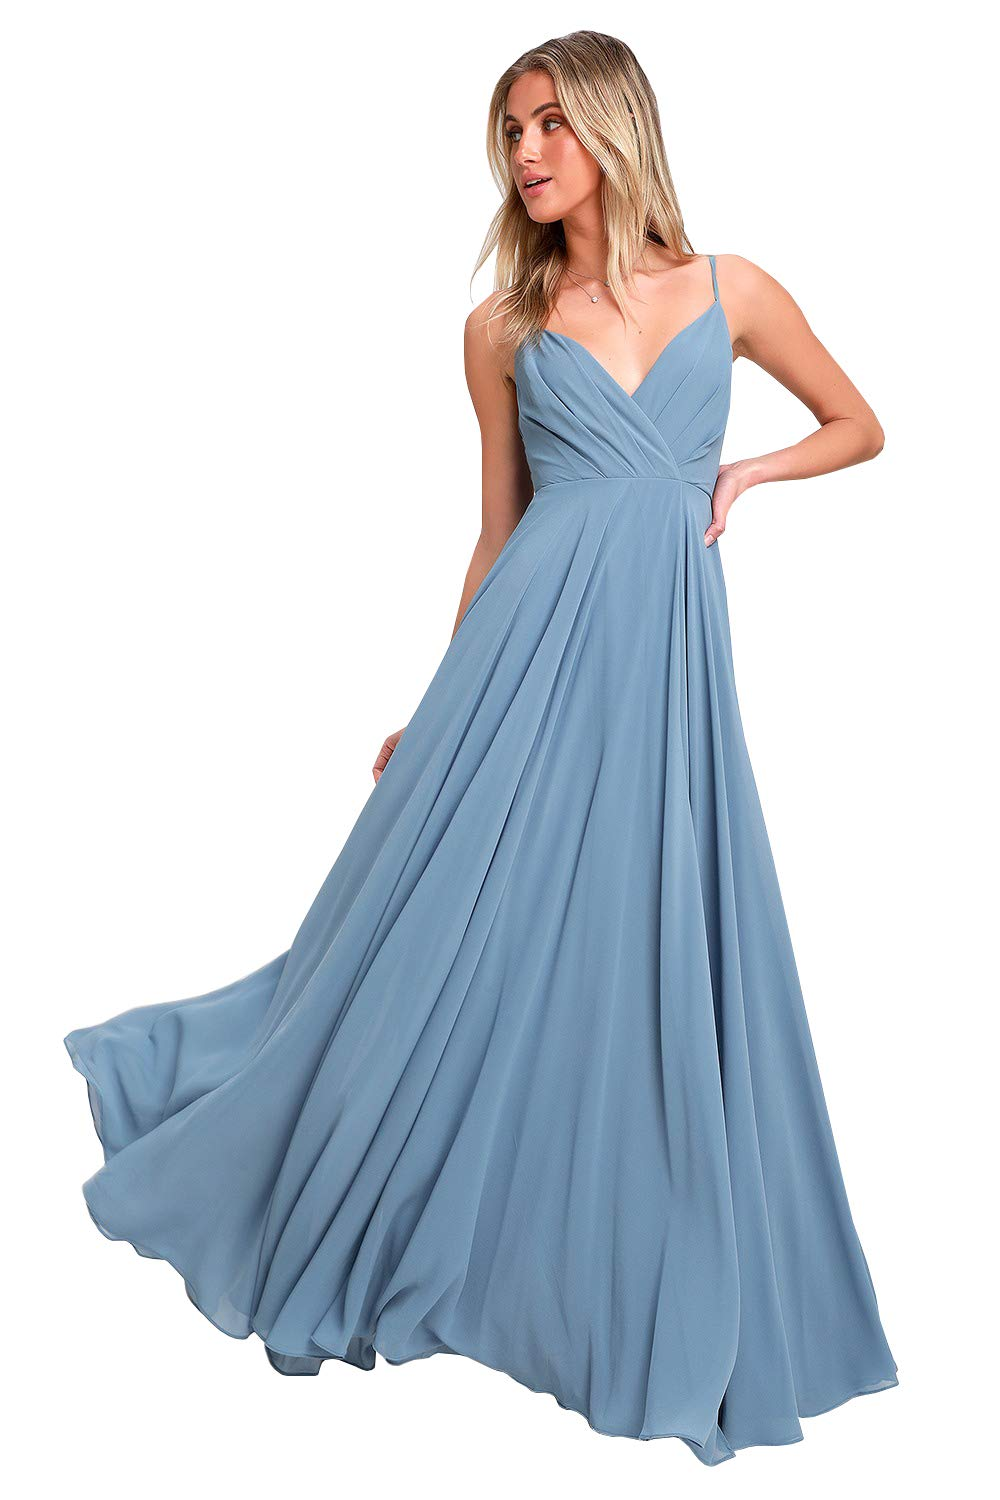 1a658ccaaf Yilis Women's Long A-line Bridesmaid Dress V-Neck Spaghetti Strap Wedding  Party Dress Dusty Blue US12